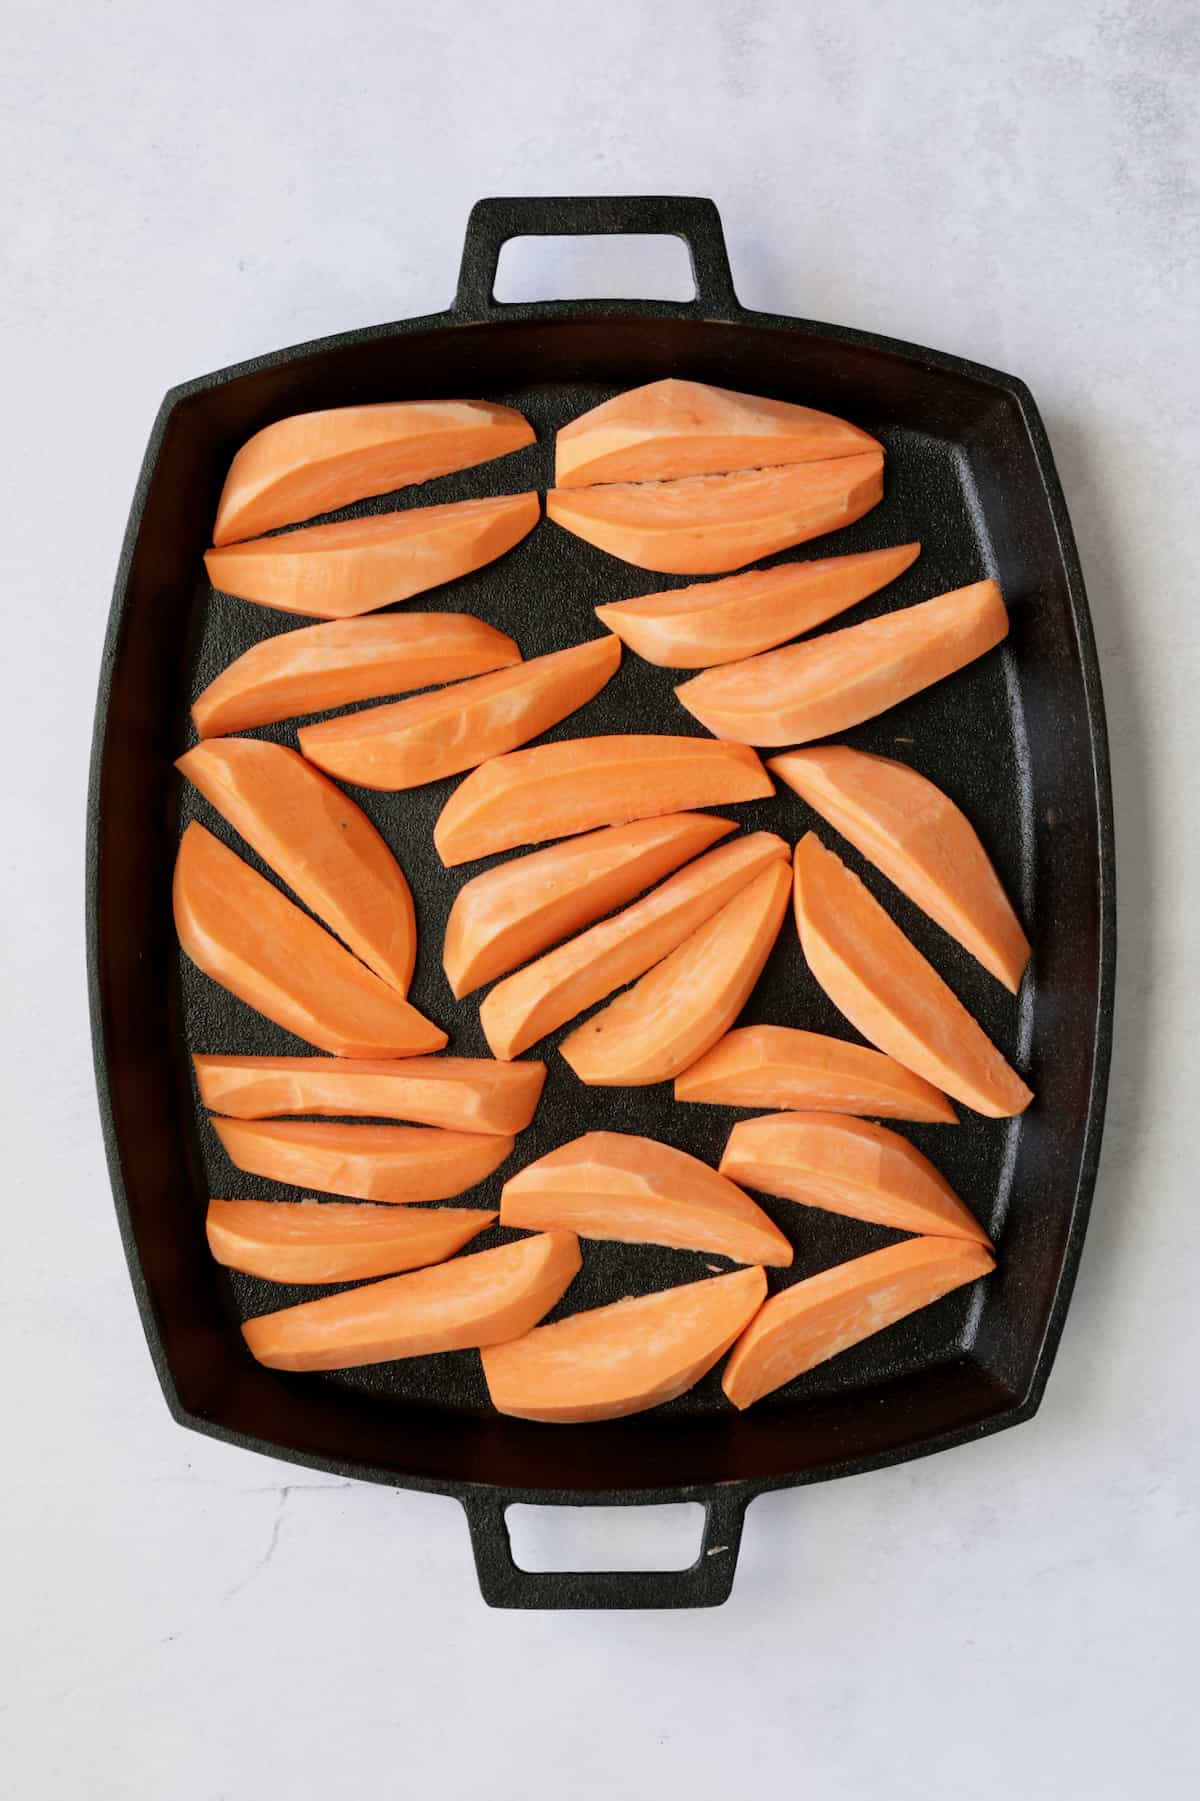 Sweet potato wedges on cast iron pan before being roasted.